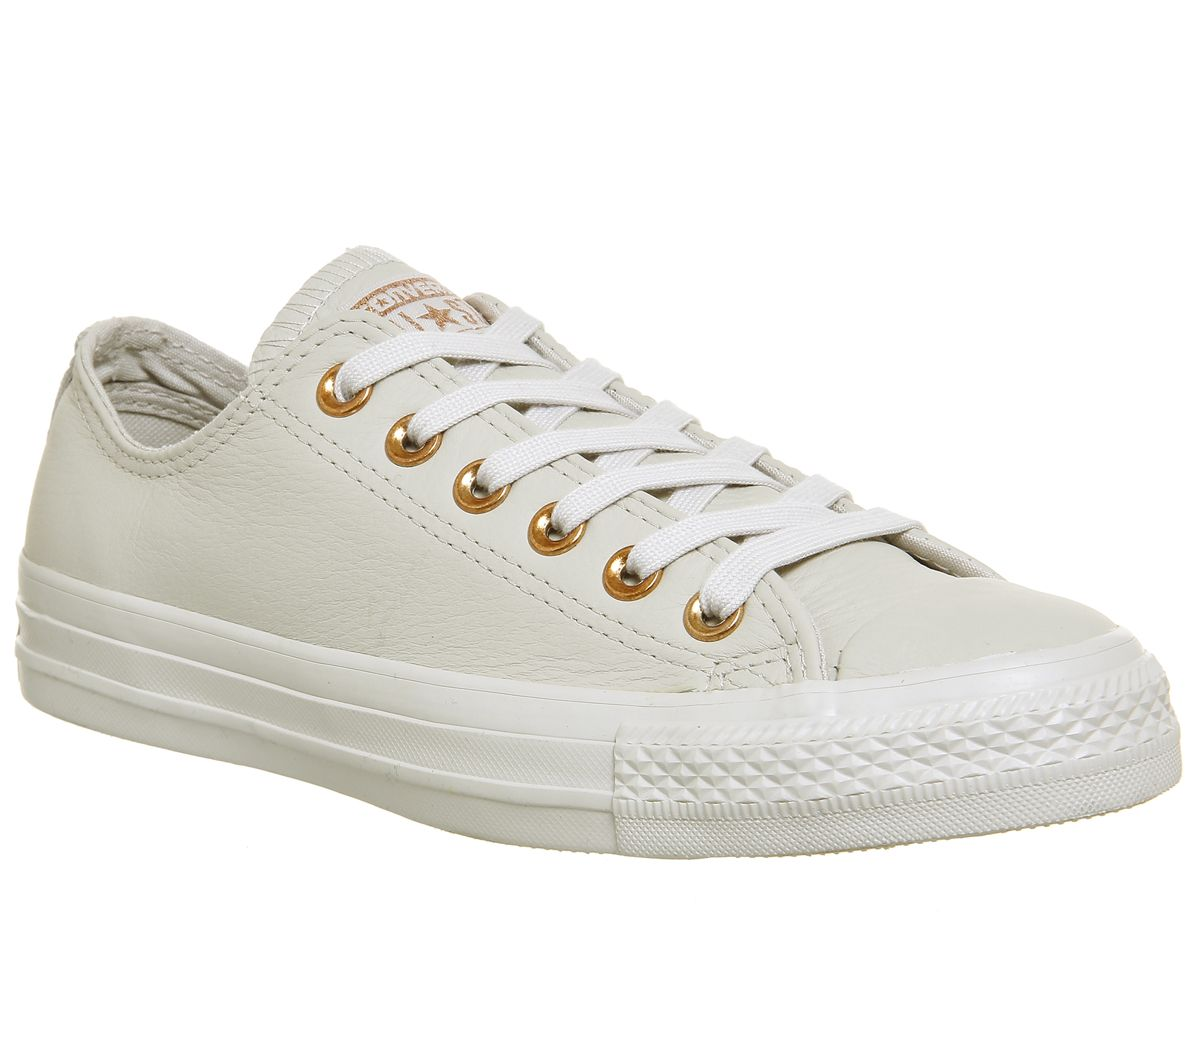 7d53e1173439 Converse All Star Low Leather Pale Putty Rose Gold - Hers trainers